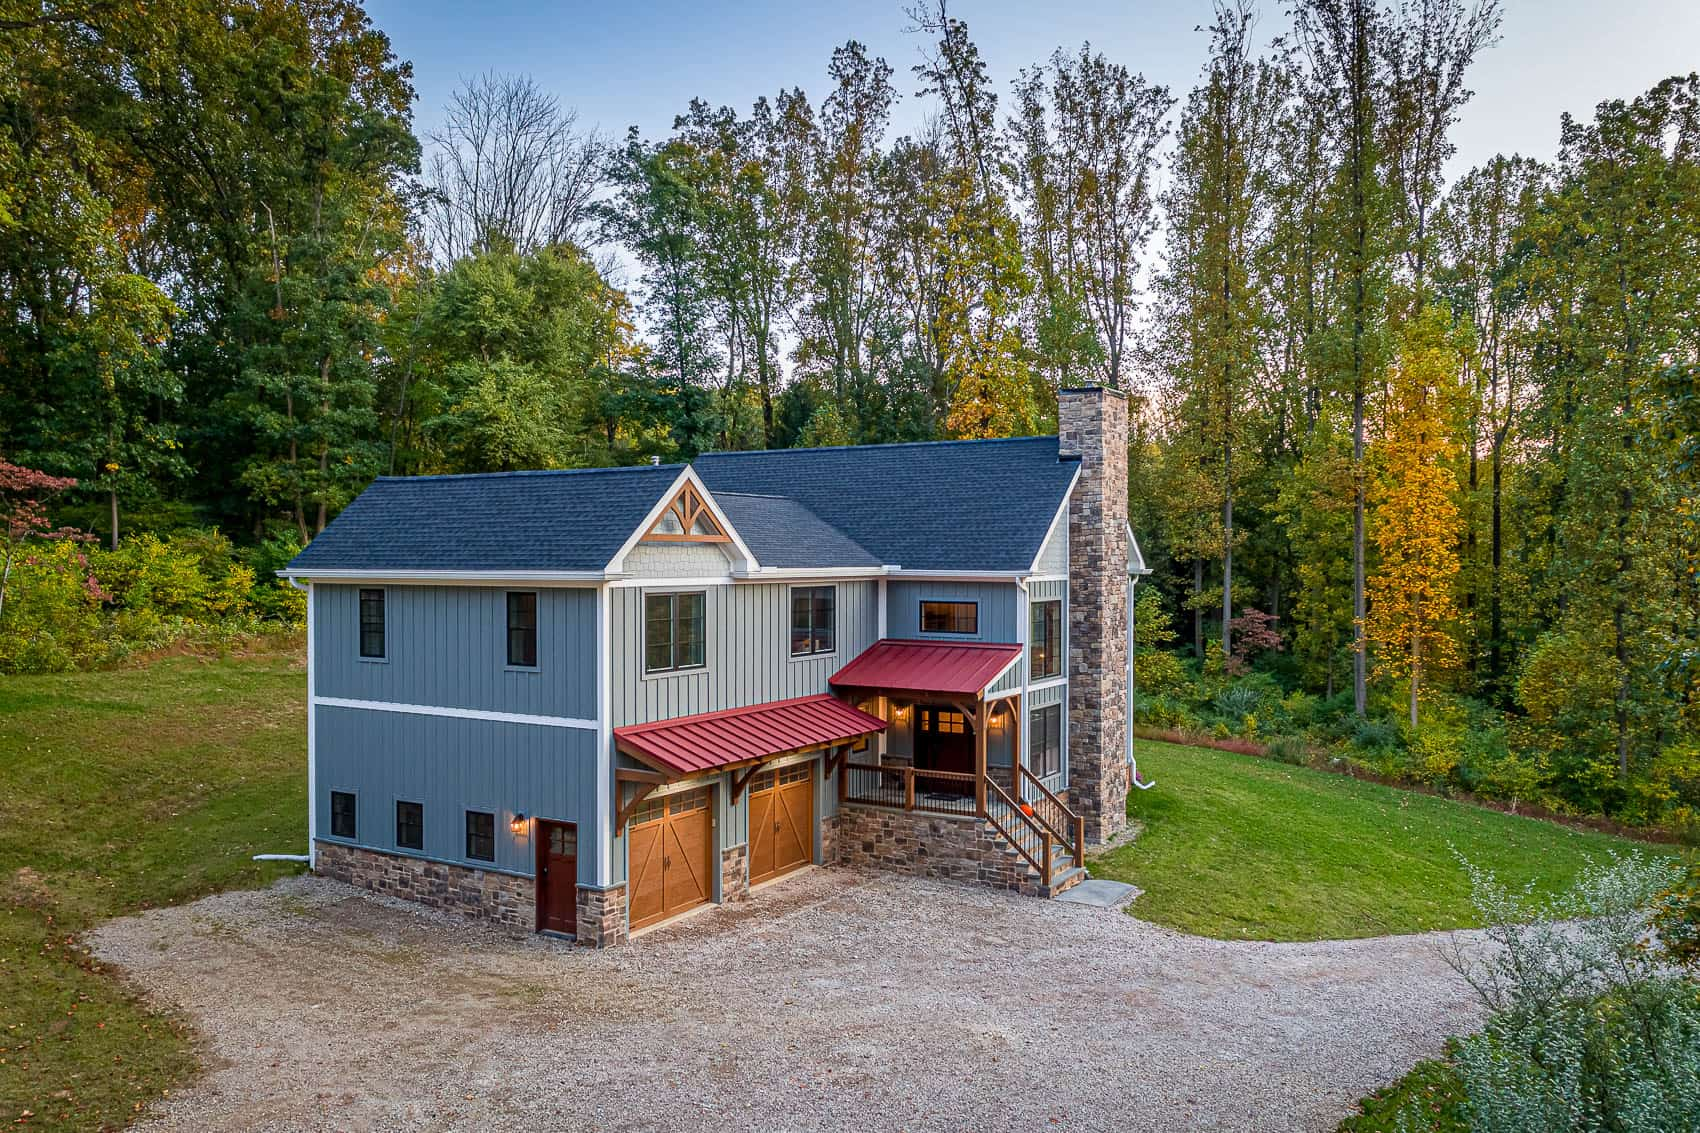 woods red roof mass timber chimney